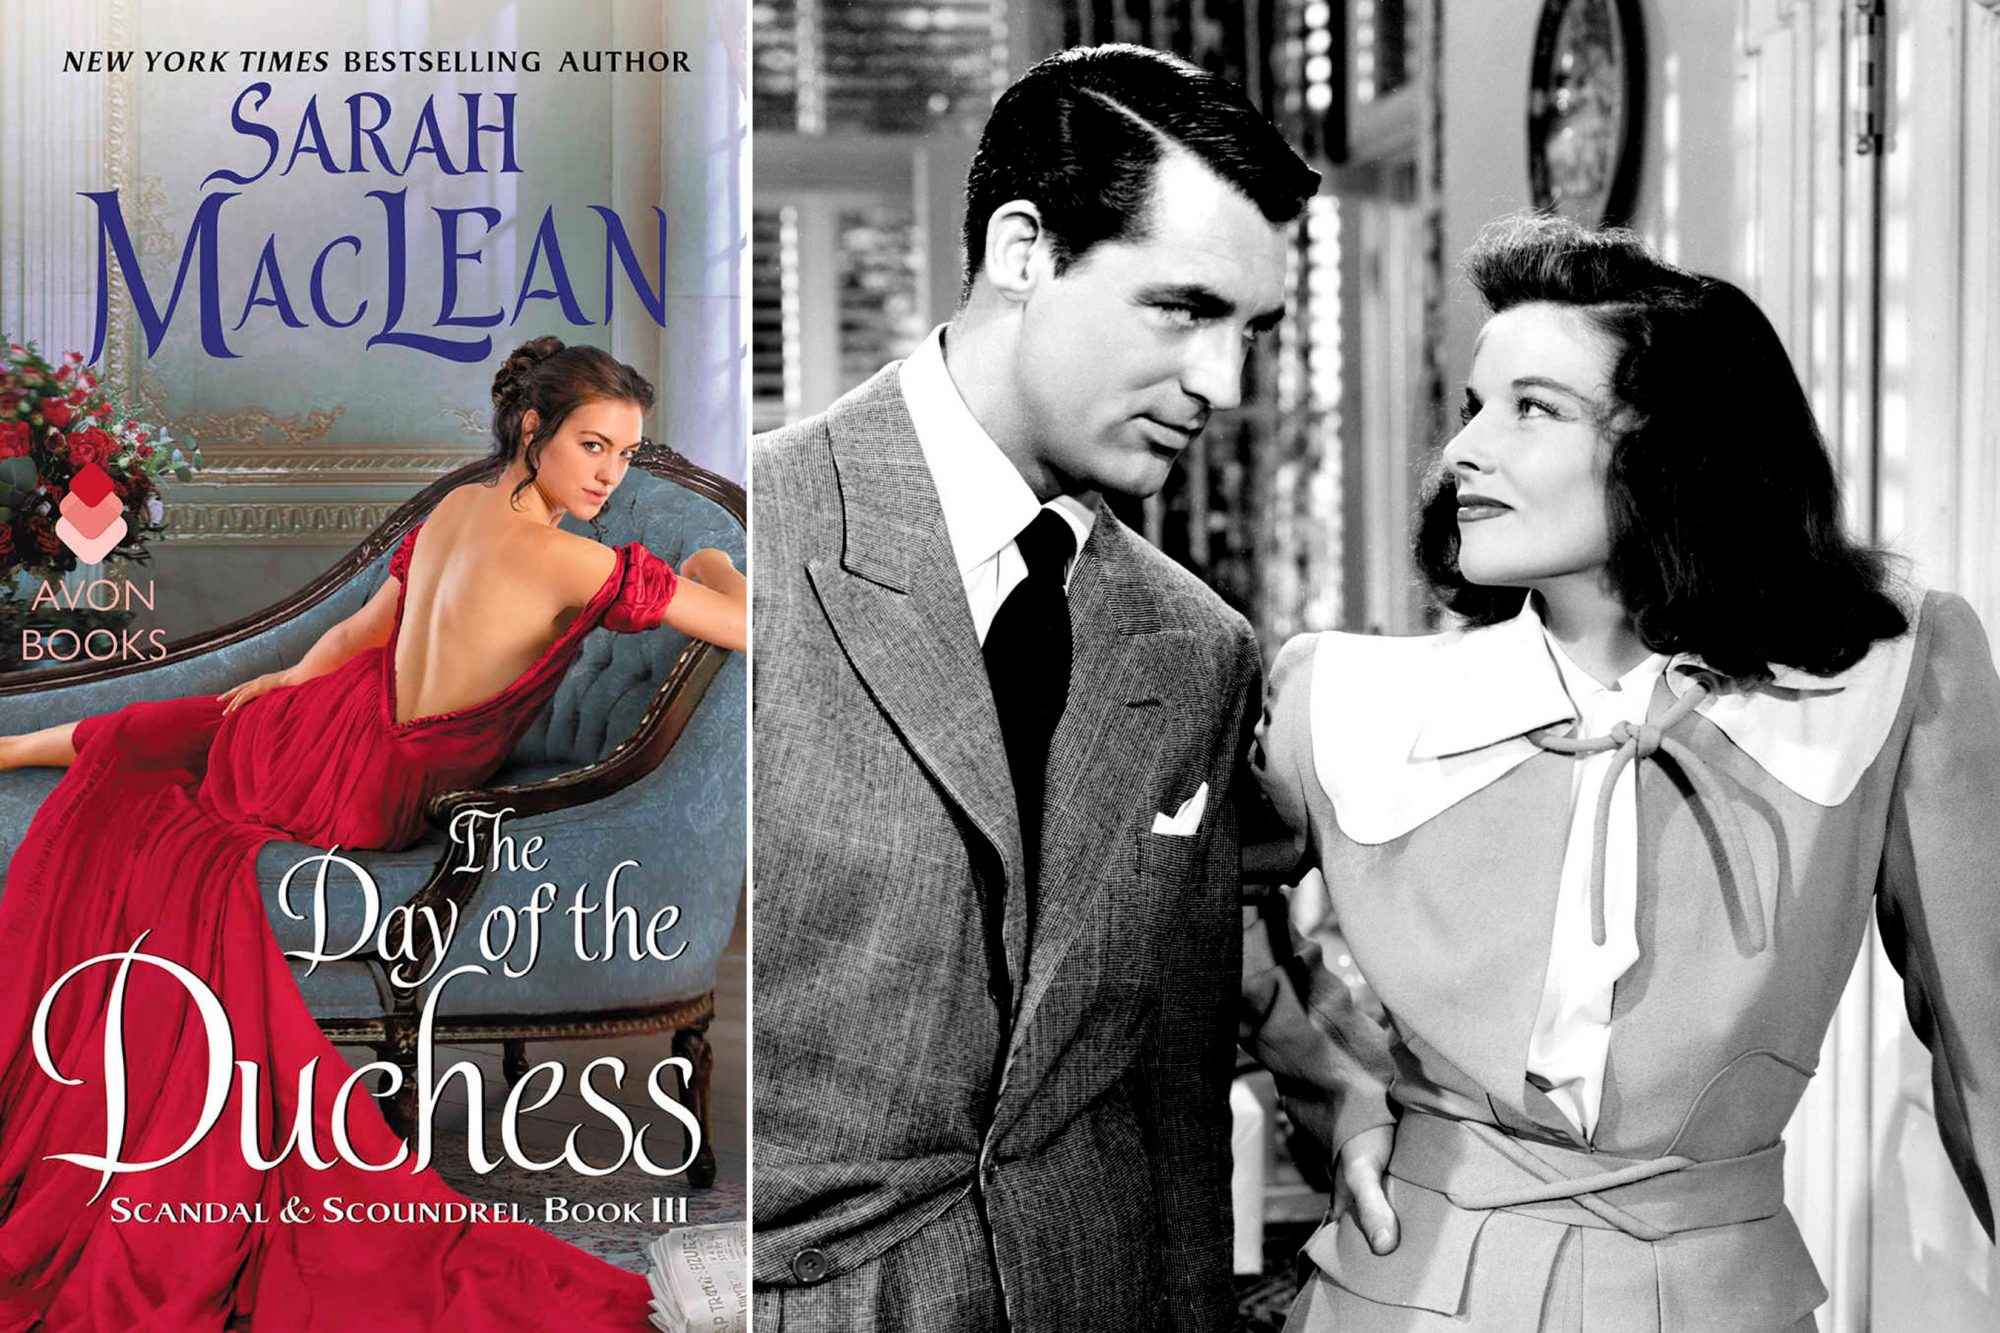 Read The Day of the Duchess by Sarah MacLean; Watch The Philadelphia Story (1940)